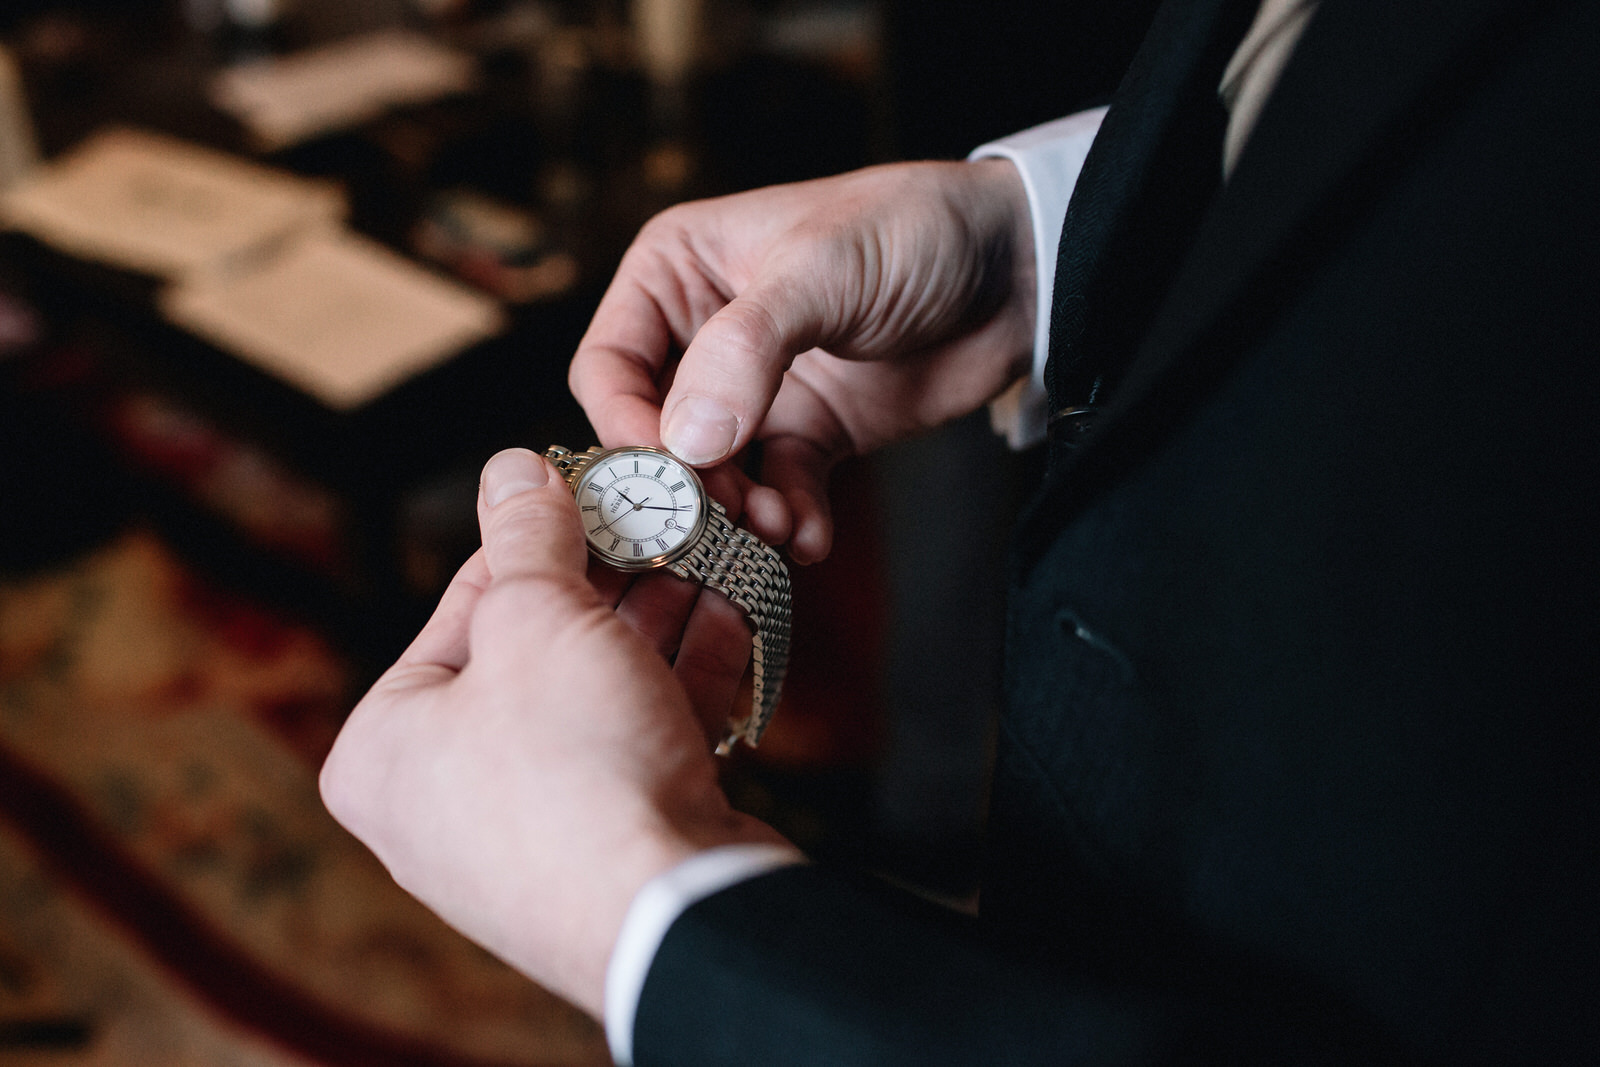 A groom is setting the time on his watch on the mornig of his wedding.